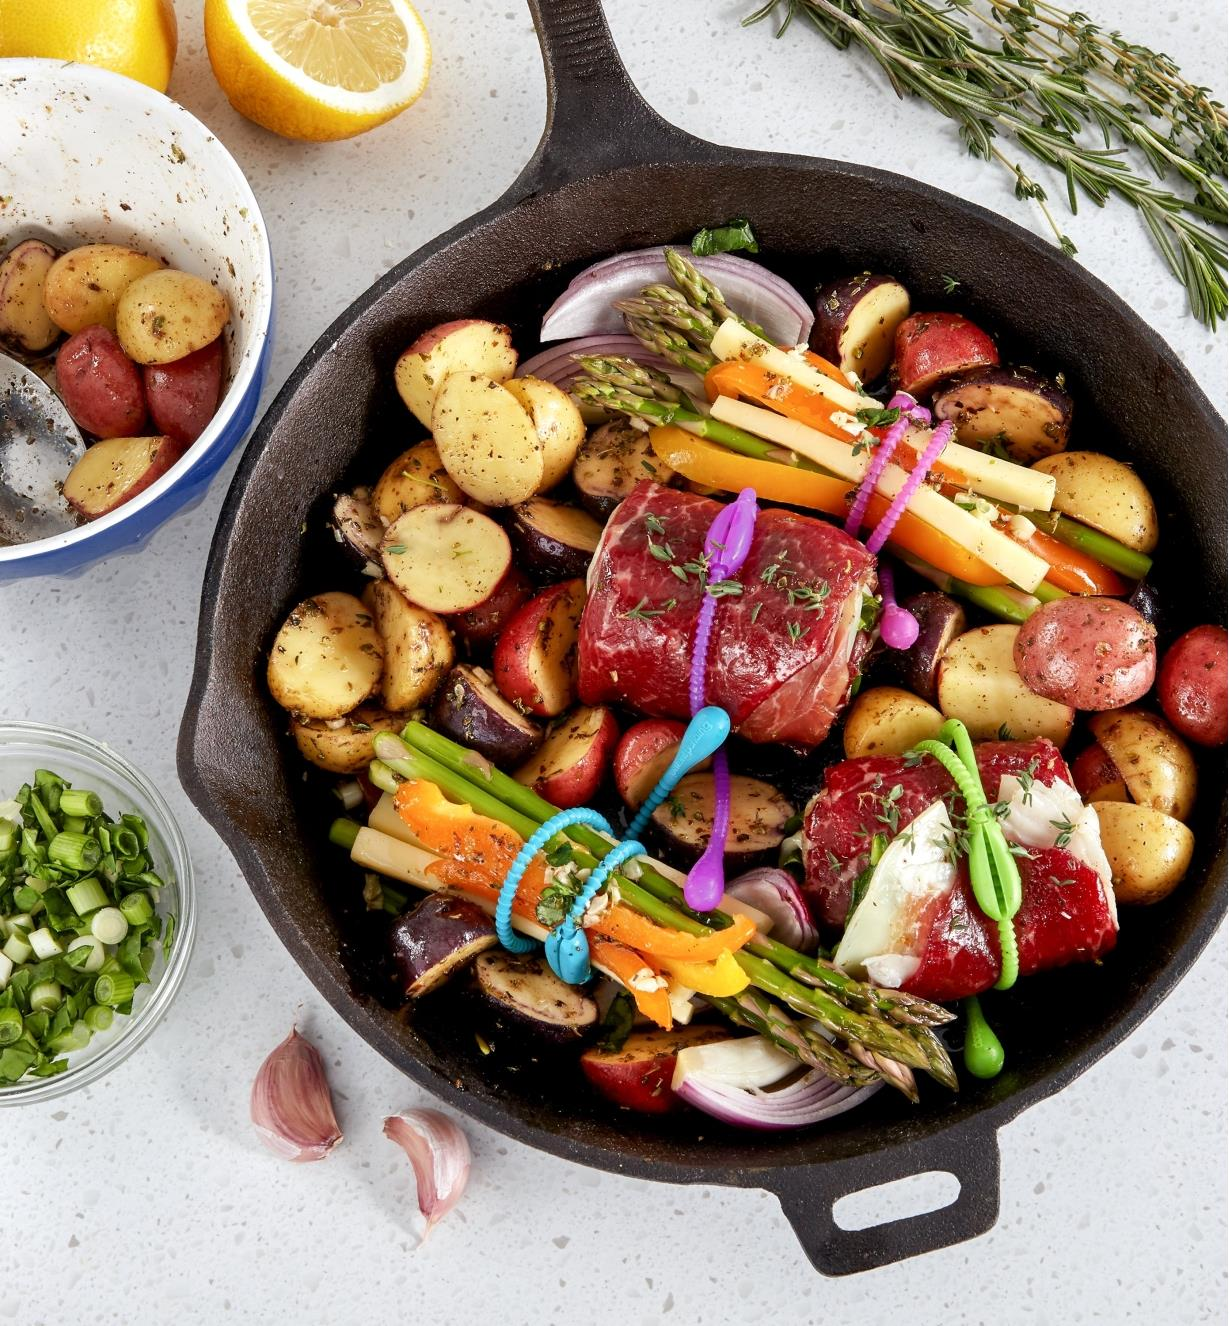 Vegetables and beef roulades secured with FoodLoop in a cast-iron pan before cooking